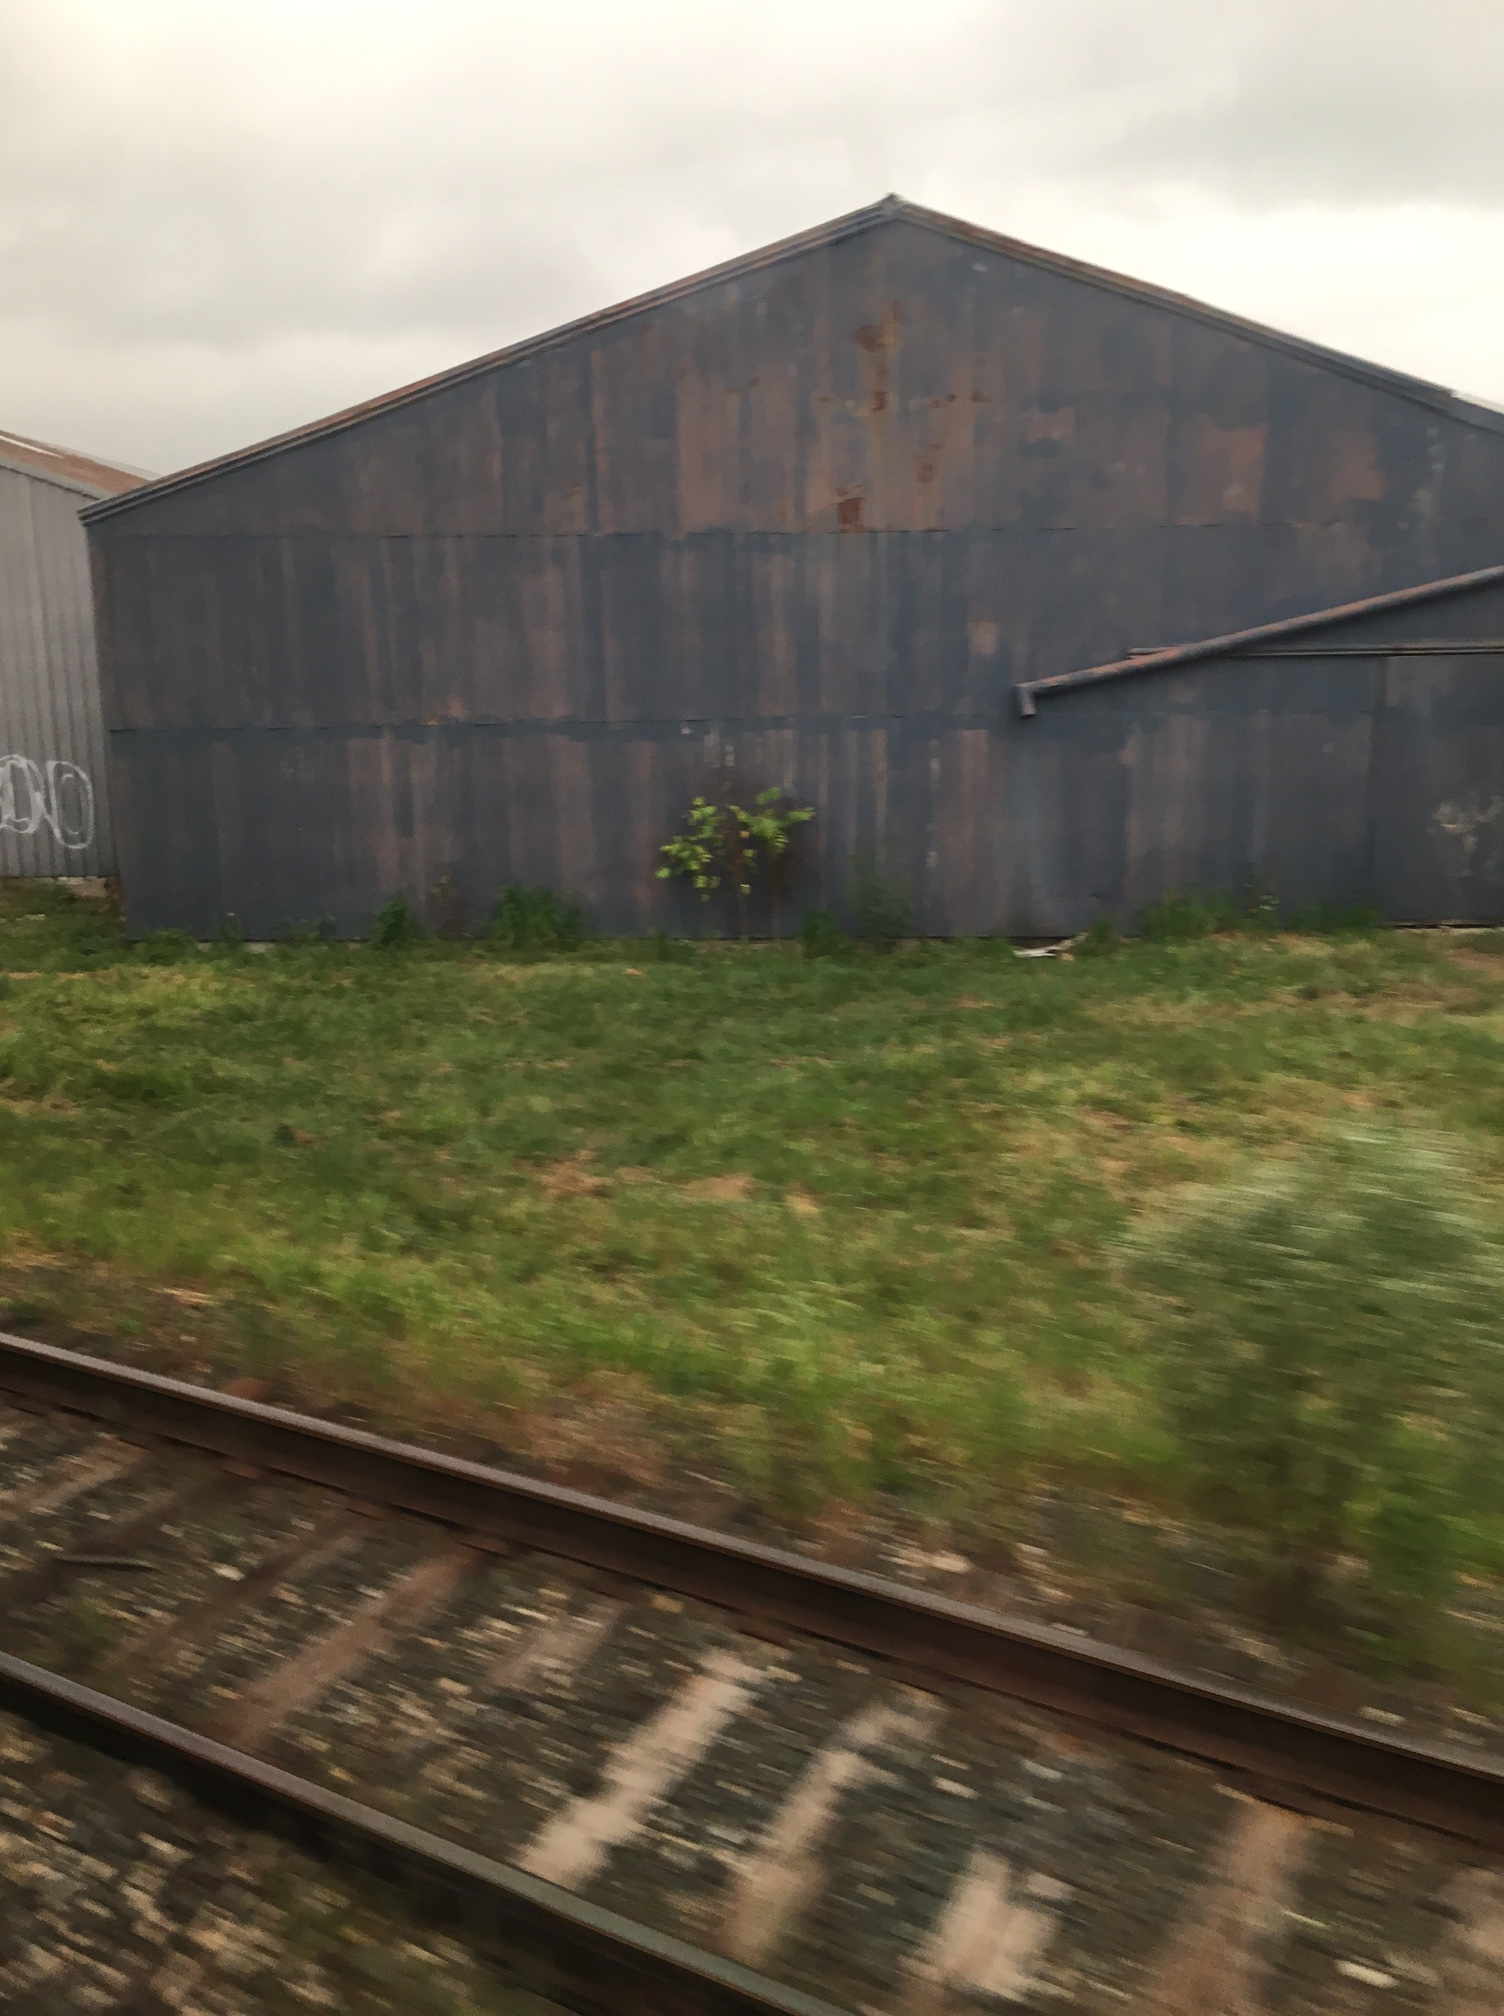 Barn on Train